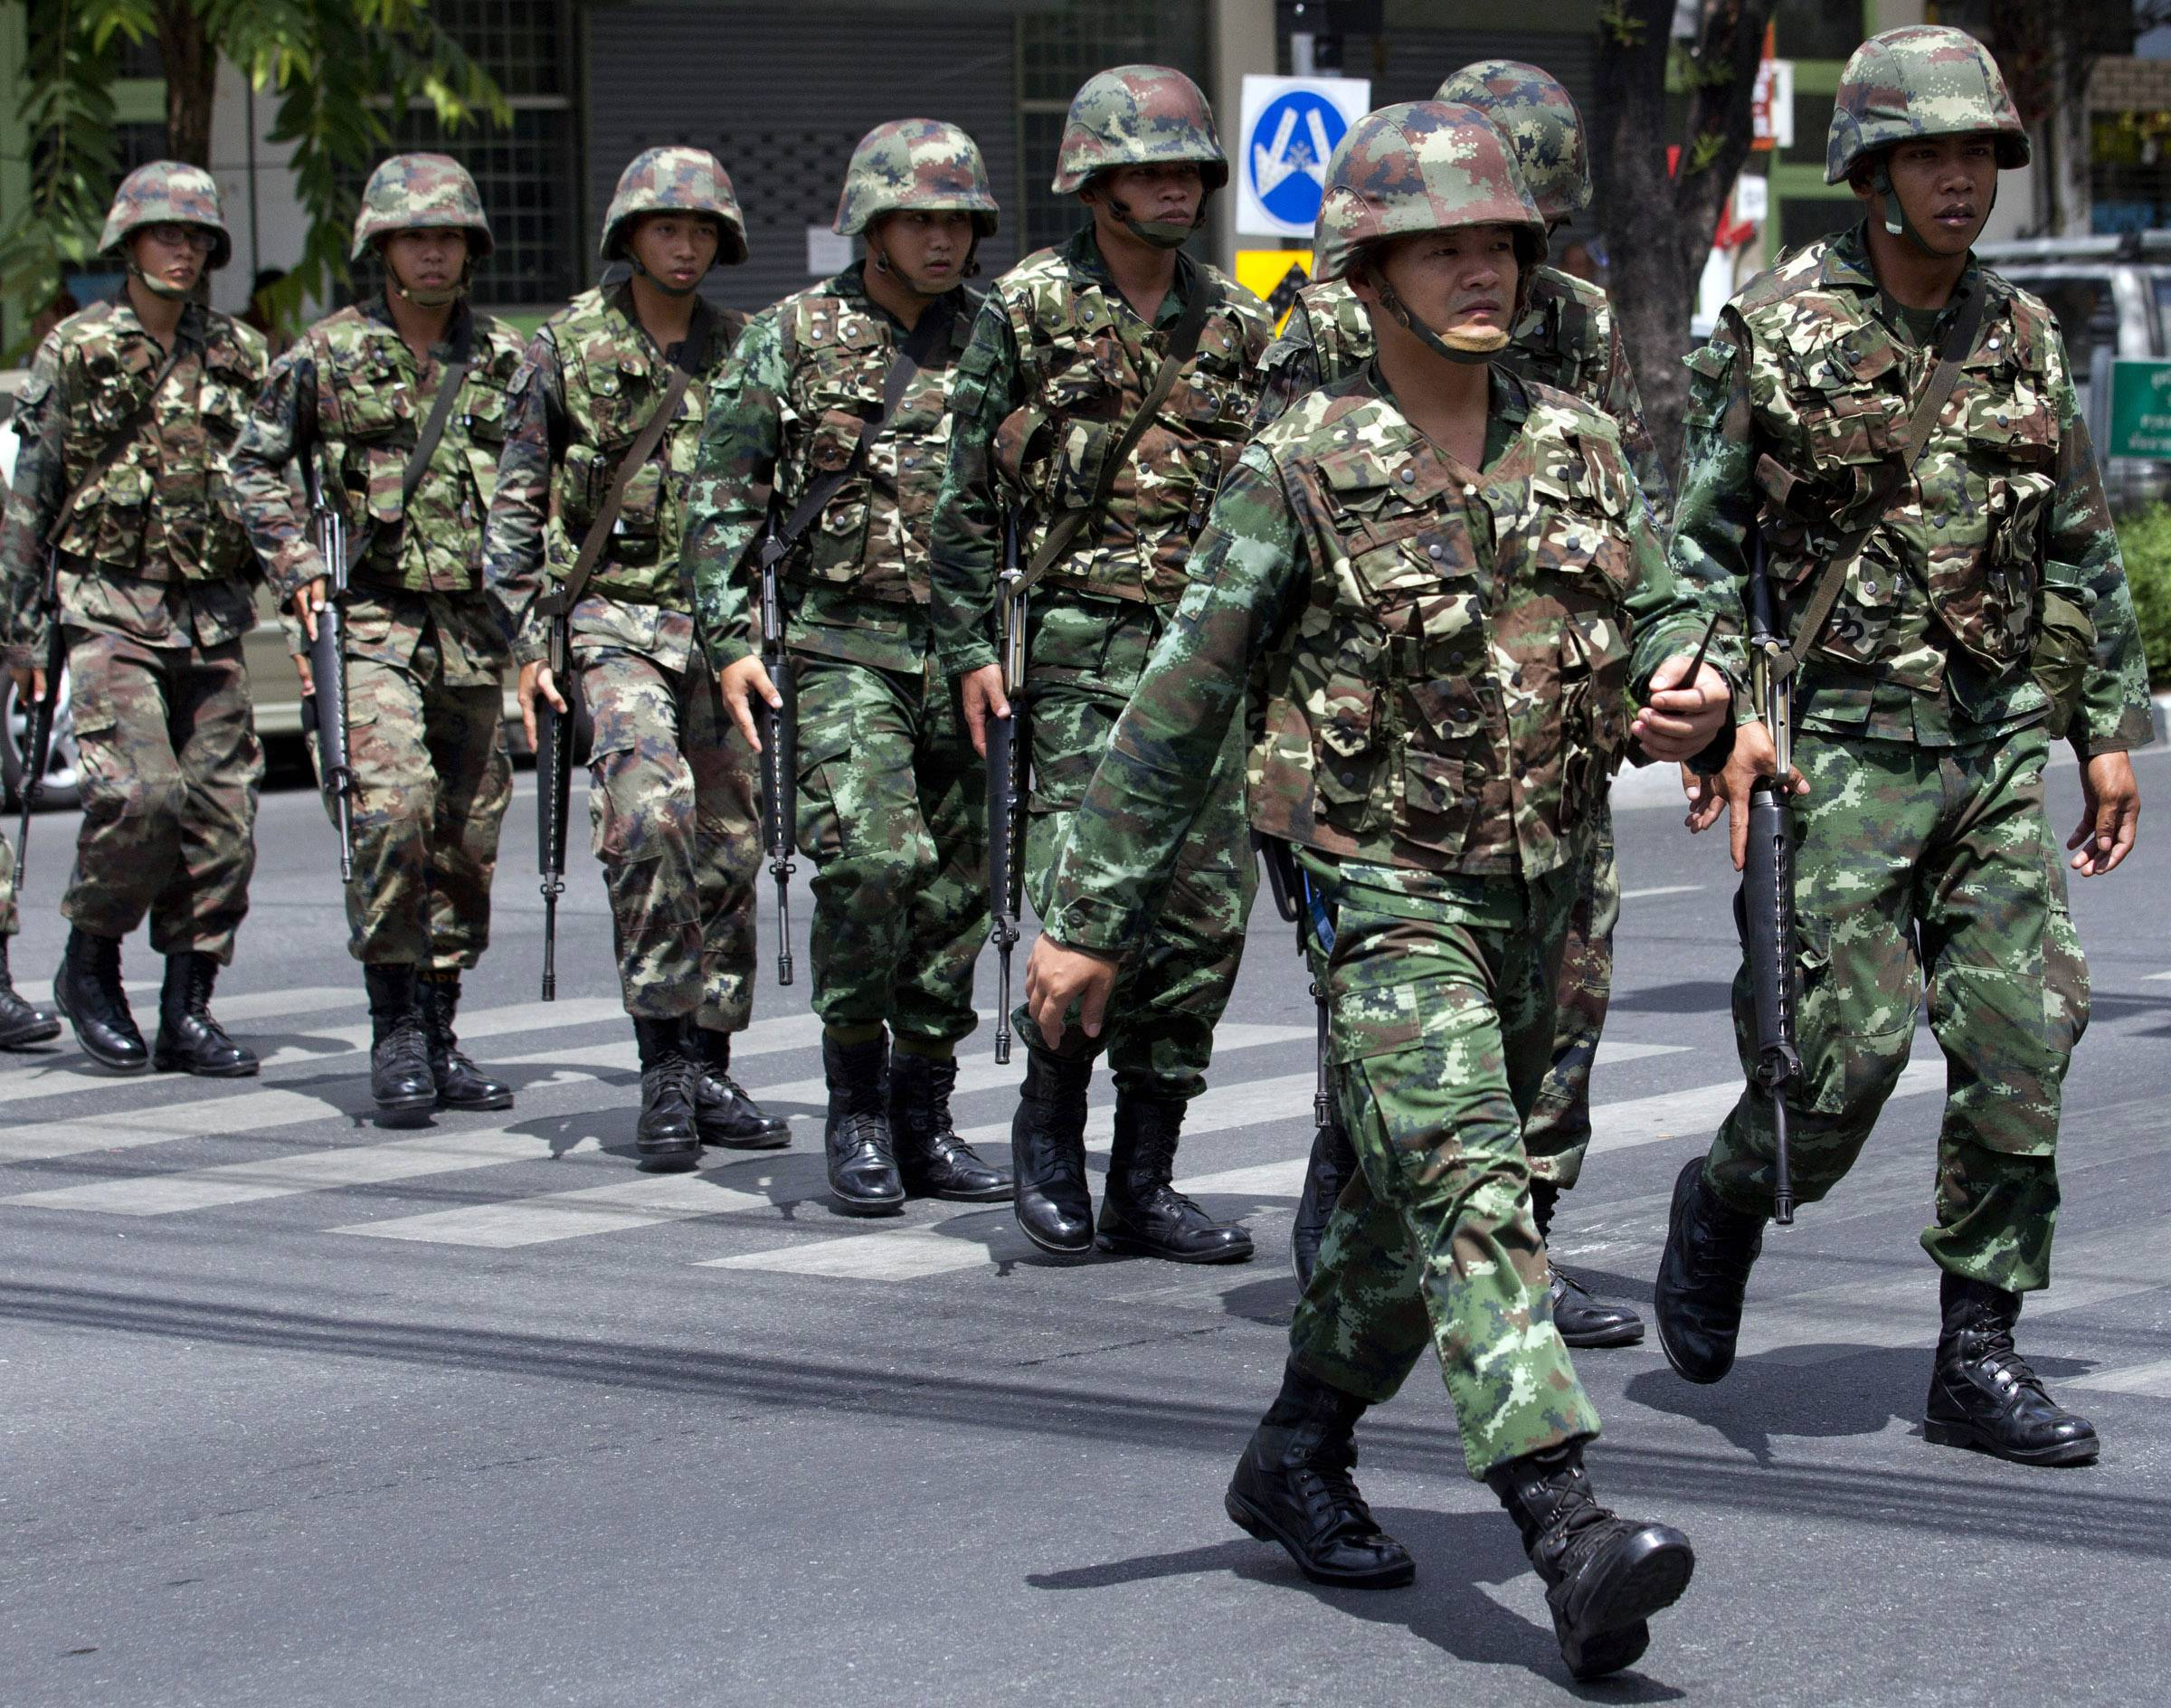 Thai soldiers patrol near the Army Club before former Prime Minister Yingluck Shinawatra arrives to report to Thailand's ruling military in Bangkok, Thailand, Friday, May 23, 2014.